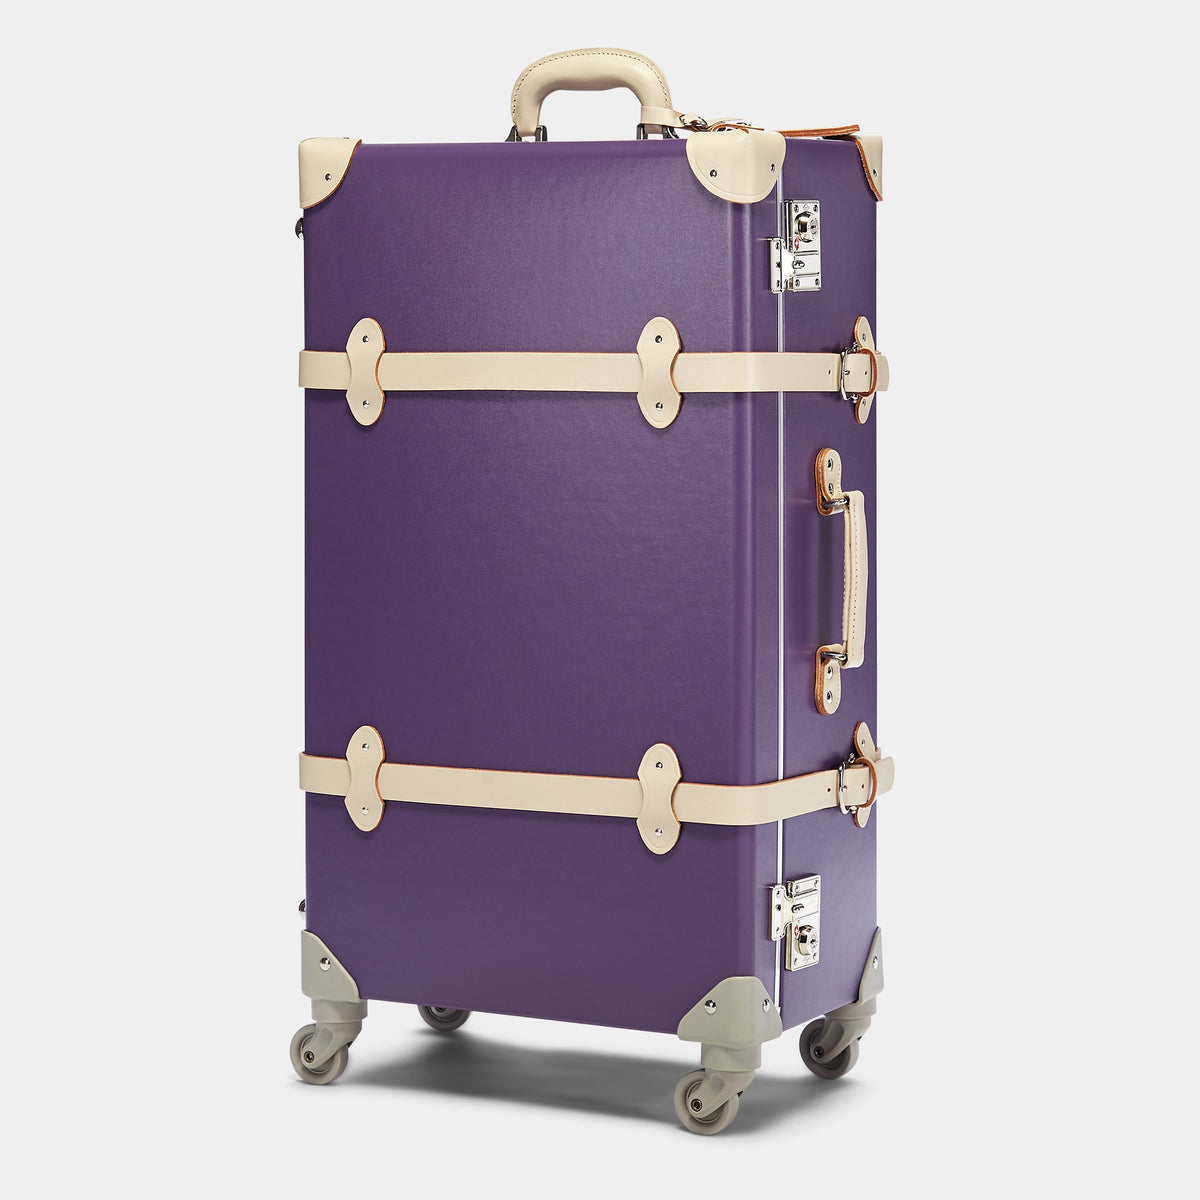 The Botanist Spinner in Purple - Vintage-Inspired Trunk Suitcase - Exterior